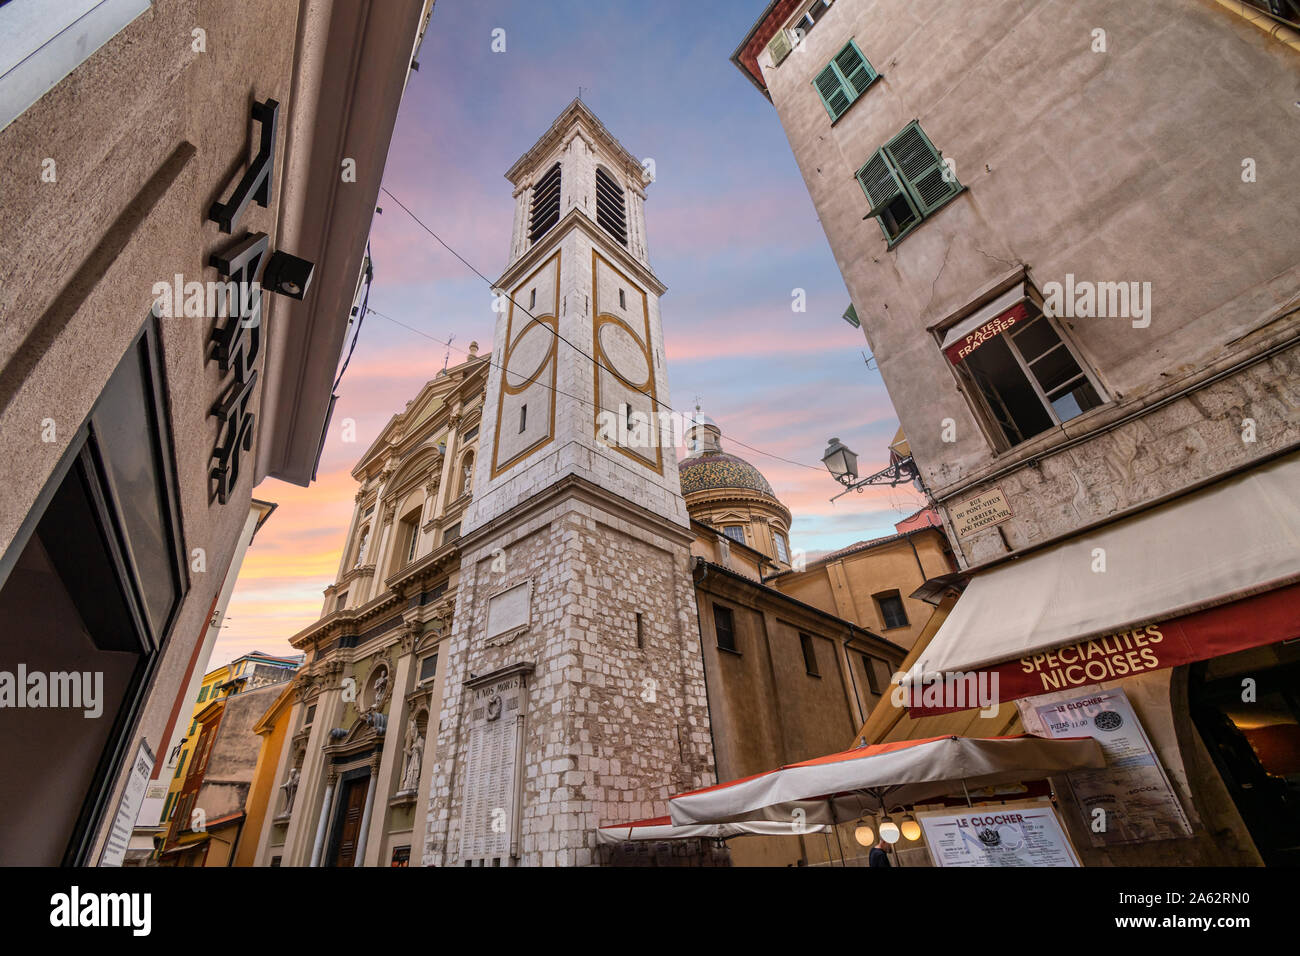 View of the campanile bell tower and the Nice Cathedral at Place Rossetti past an apartment building as the sun sets in Old Town Nice France. Stock Photo